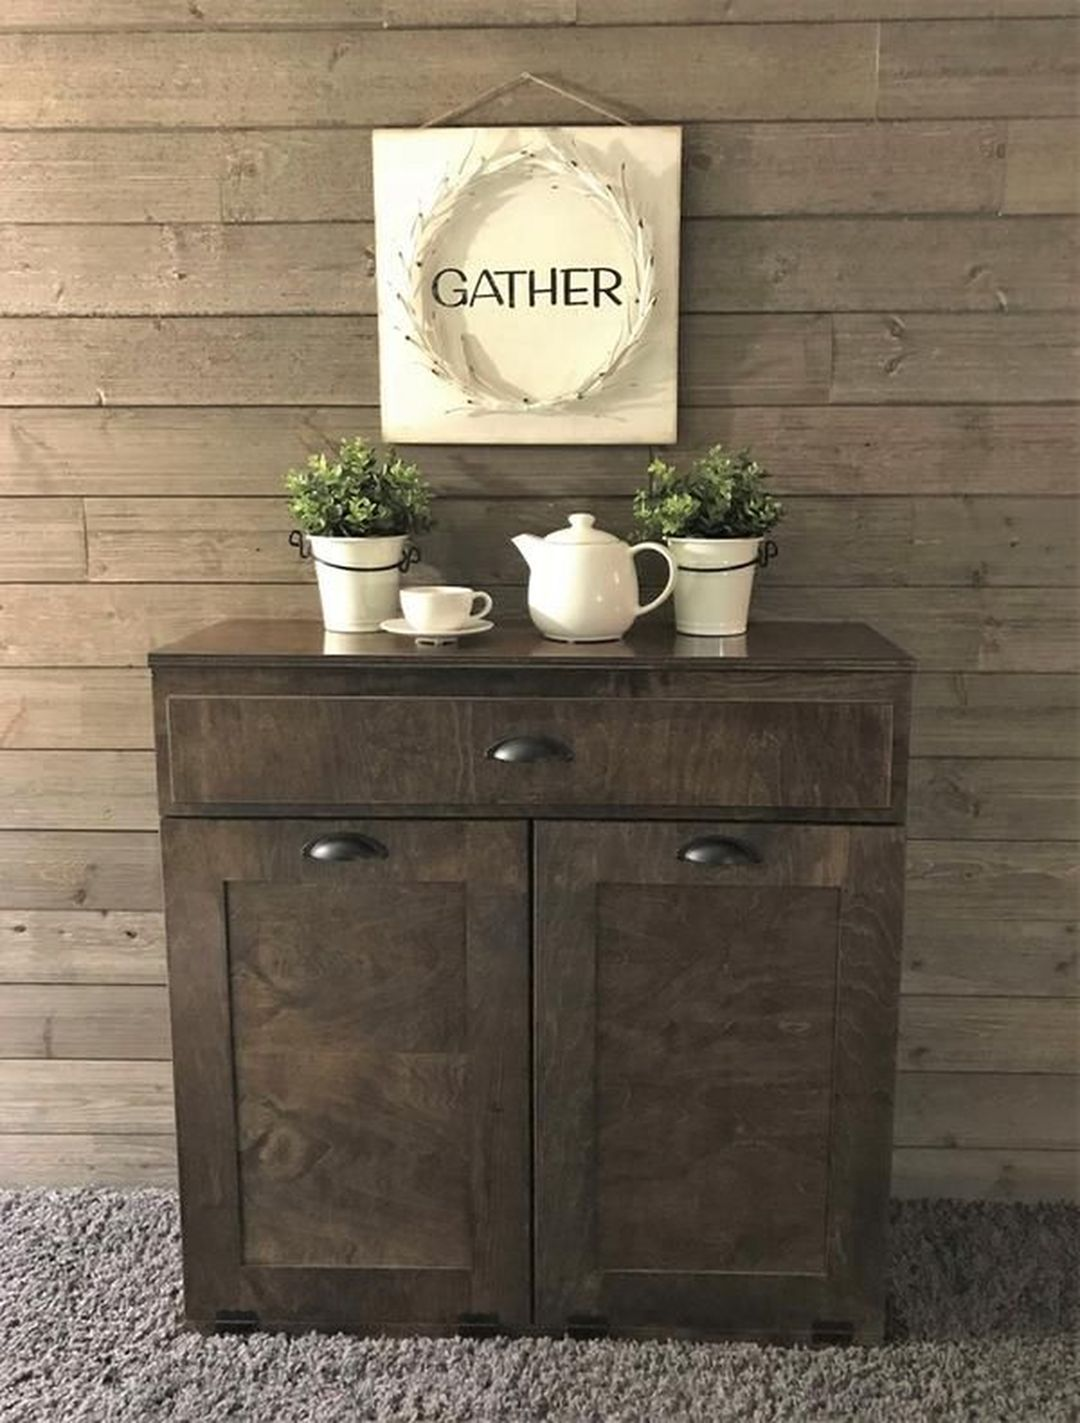 15 Best And Unique Rustic Trash Can Ideas for Outdoor ...